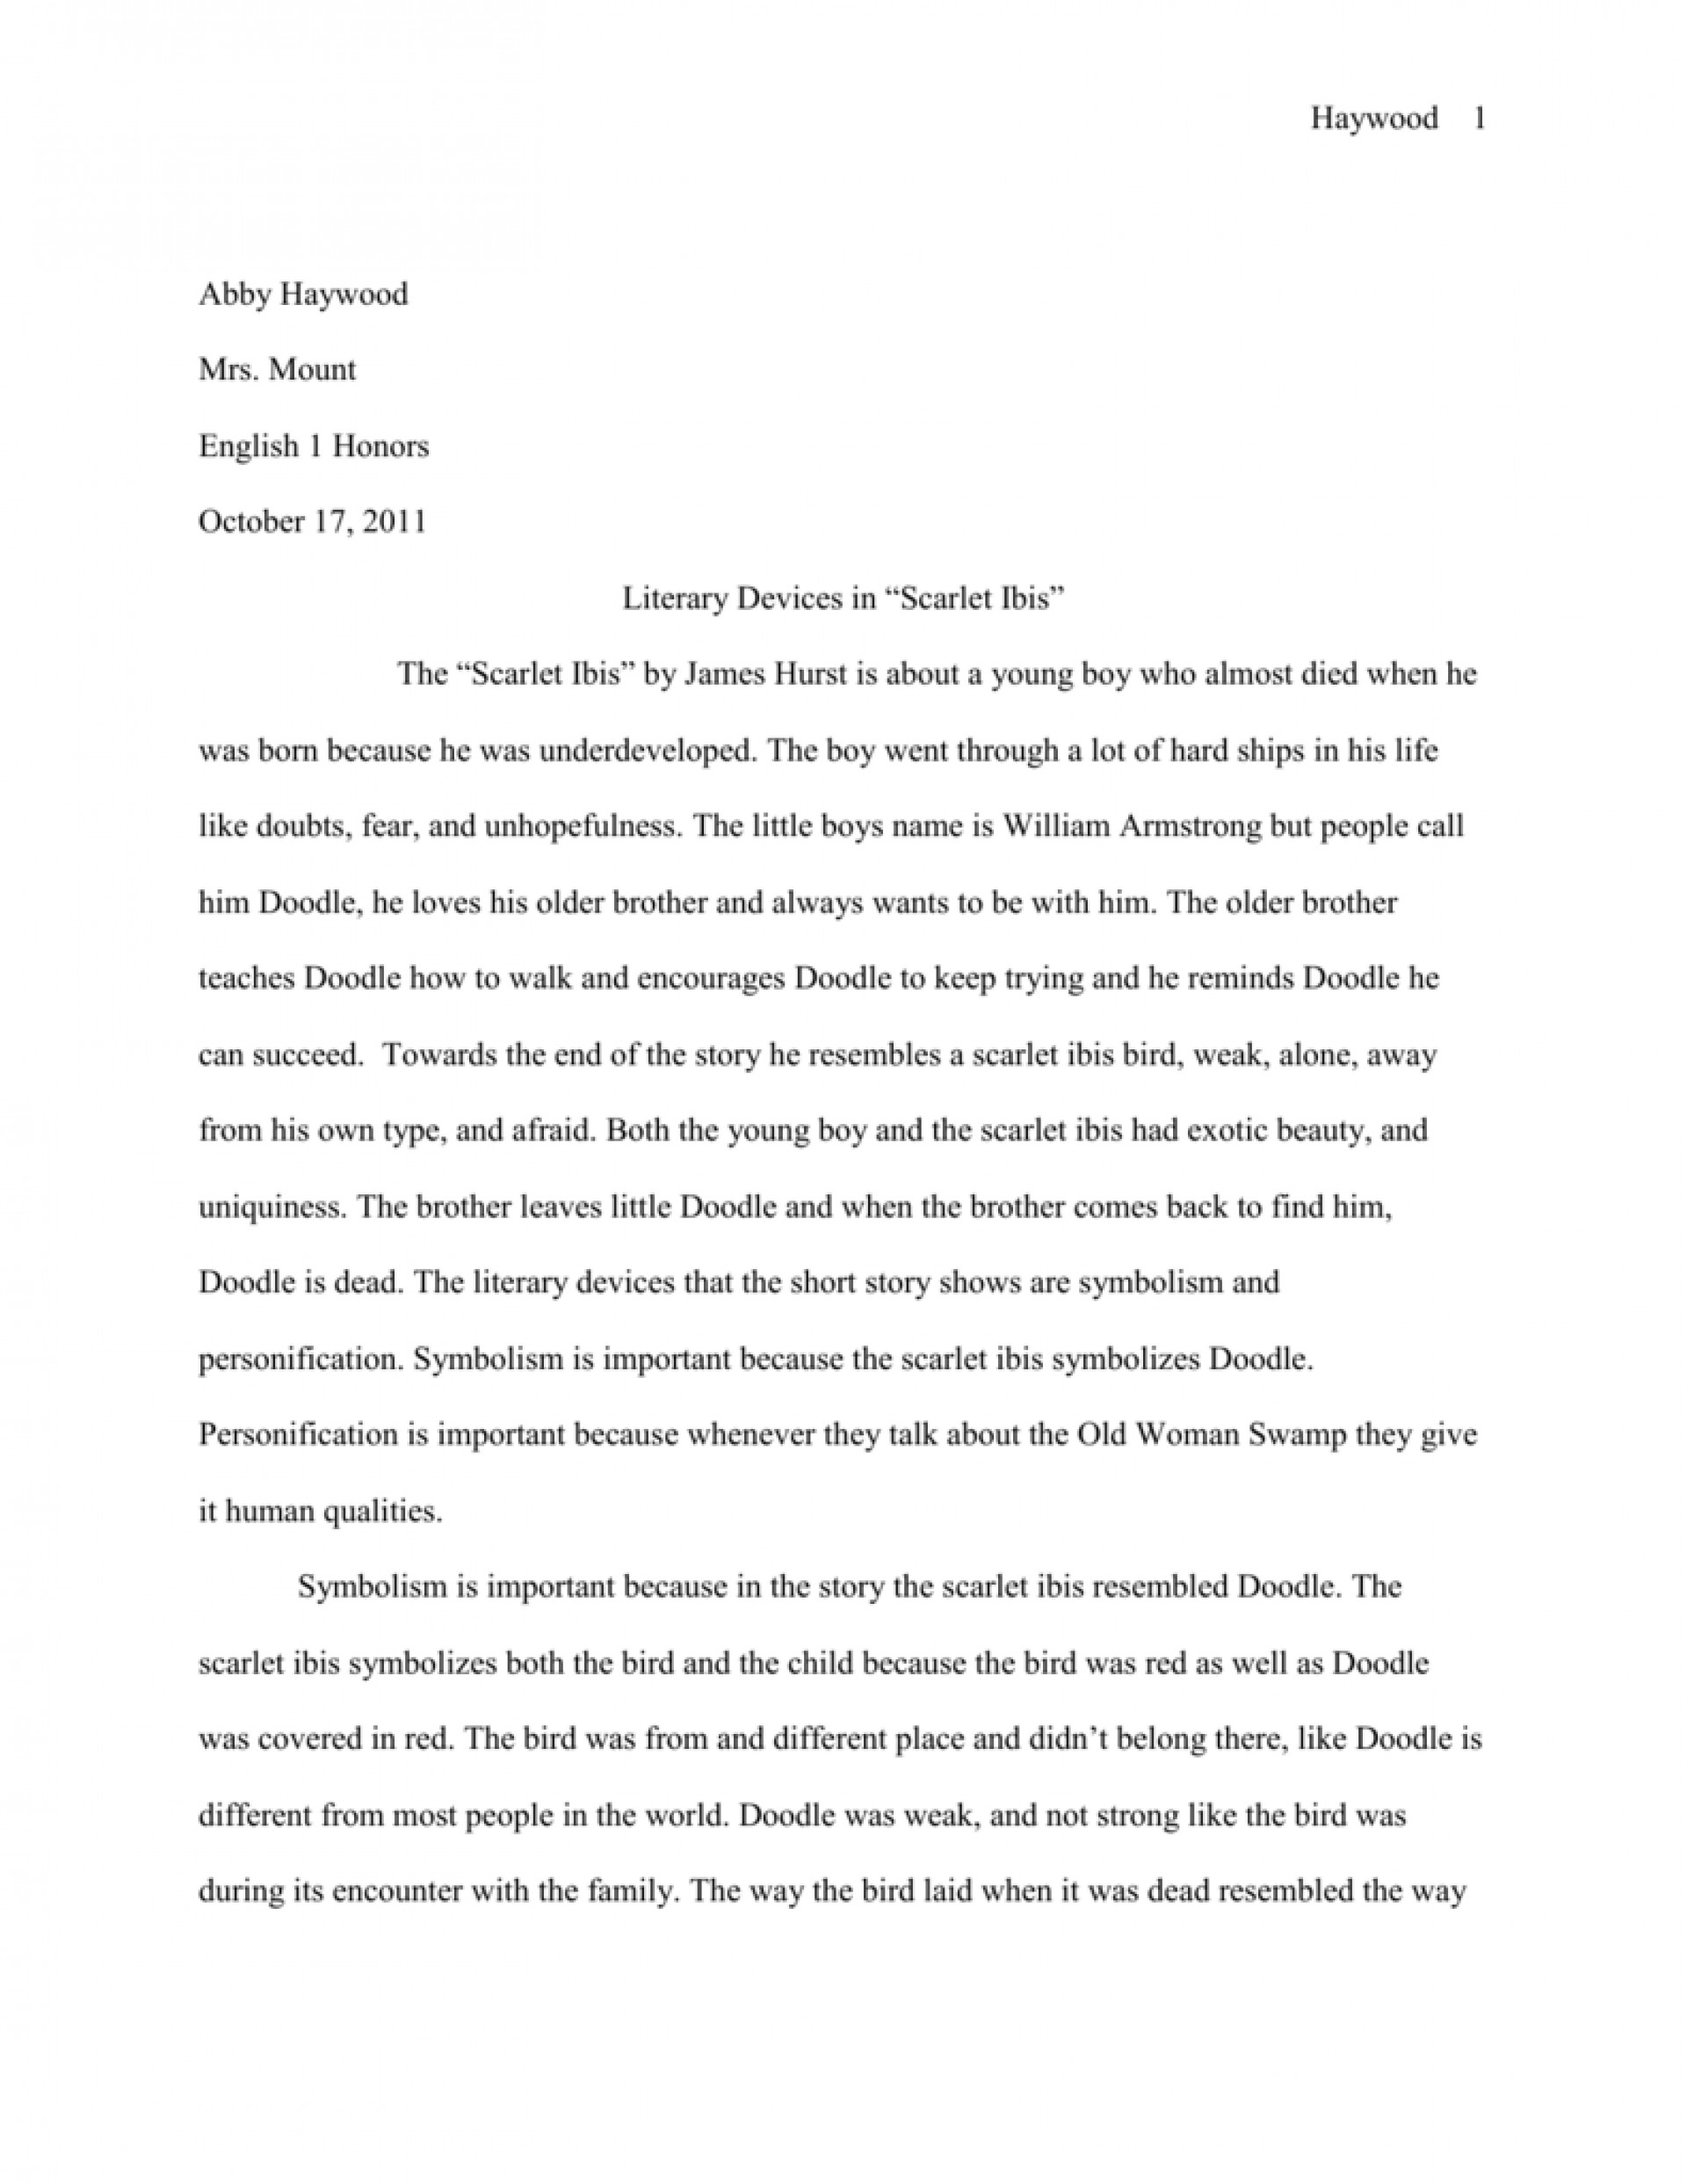 003 009067892 1 The Scarlet Ibis Essay Best Thesis Questions Discussion 1920